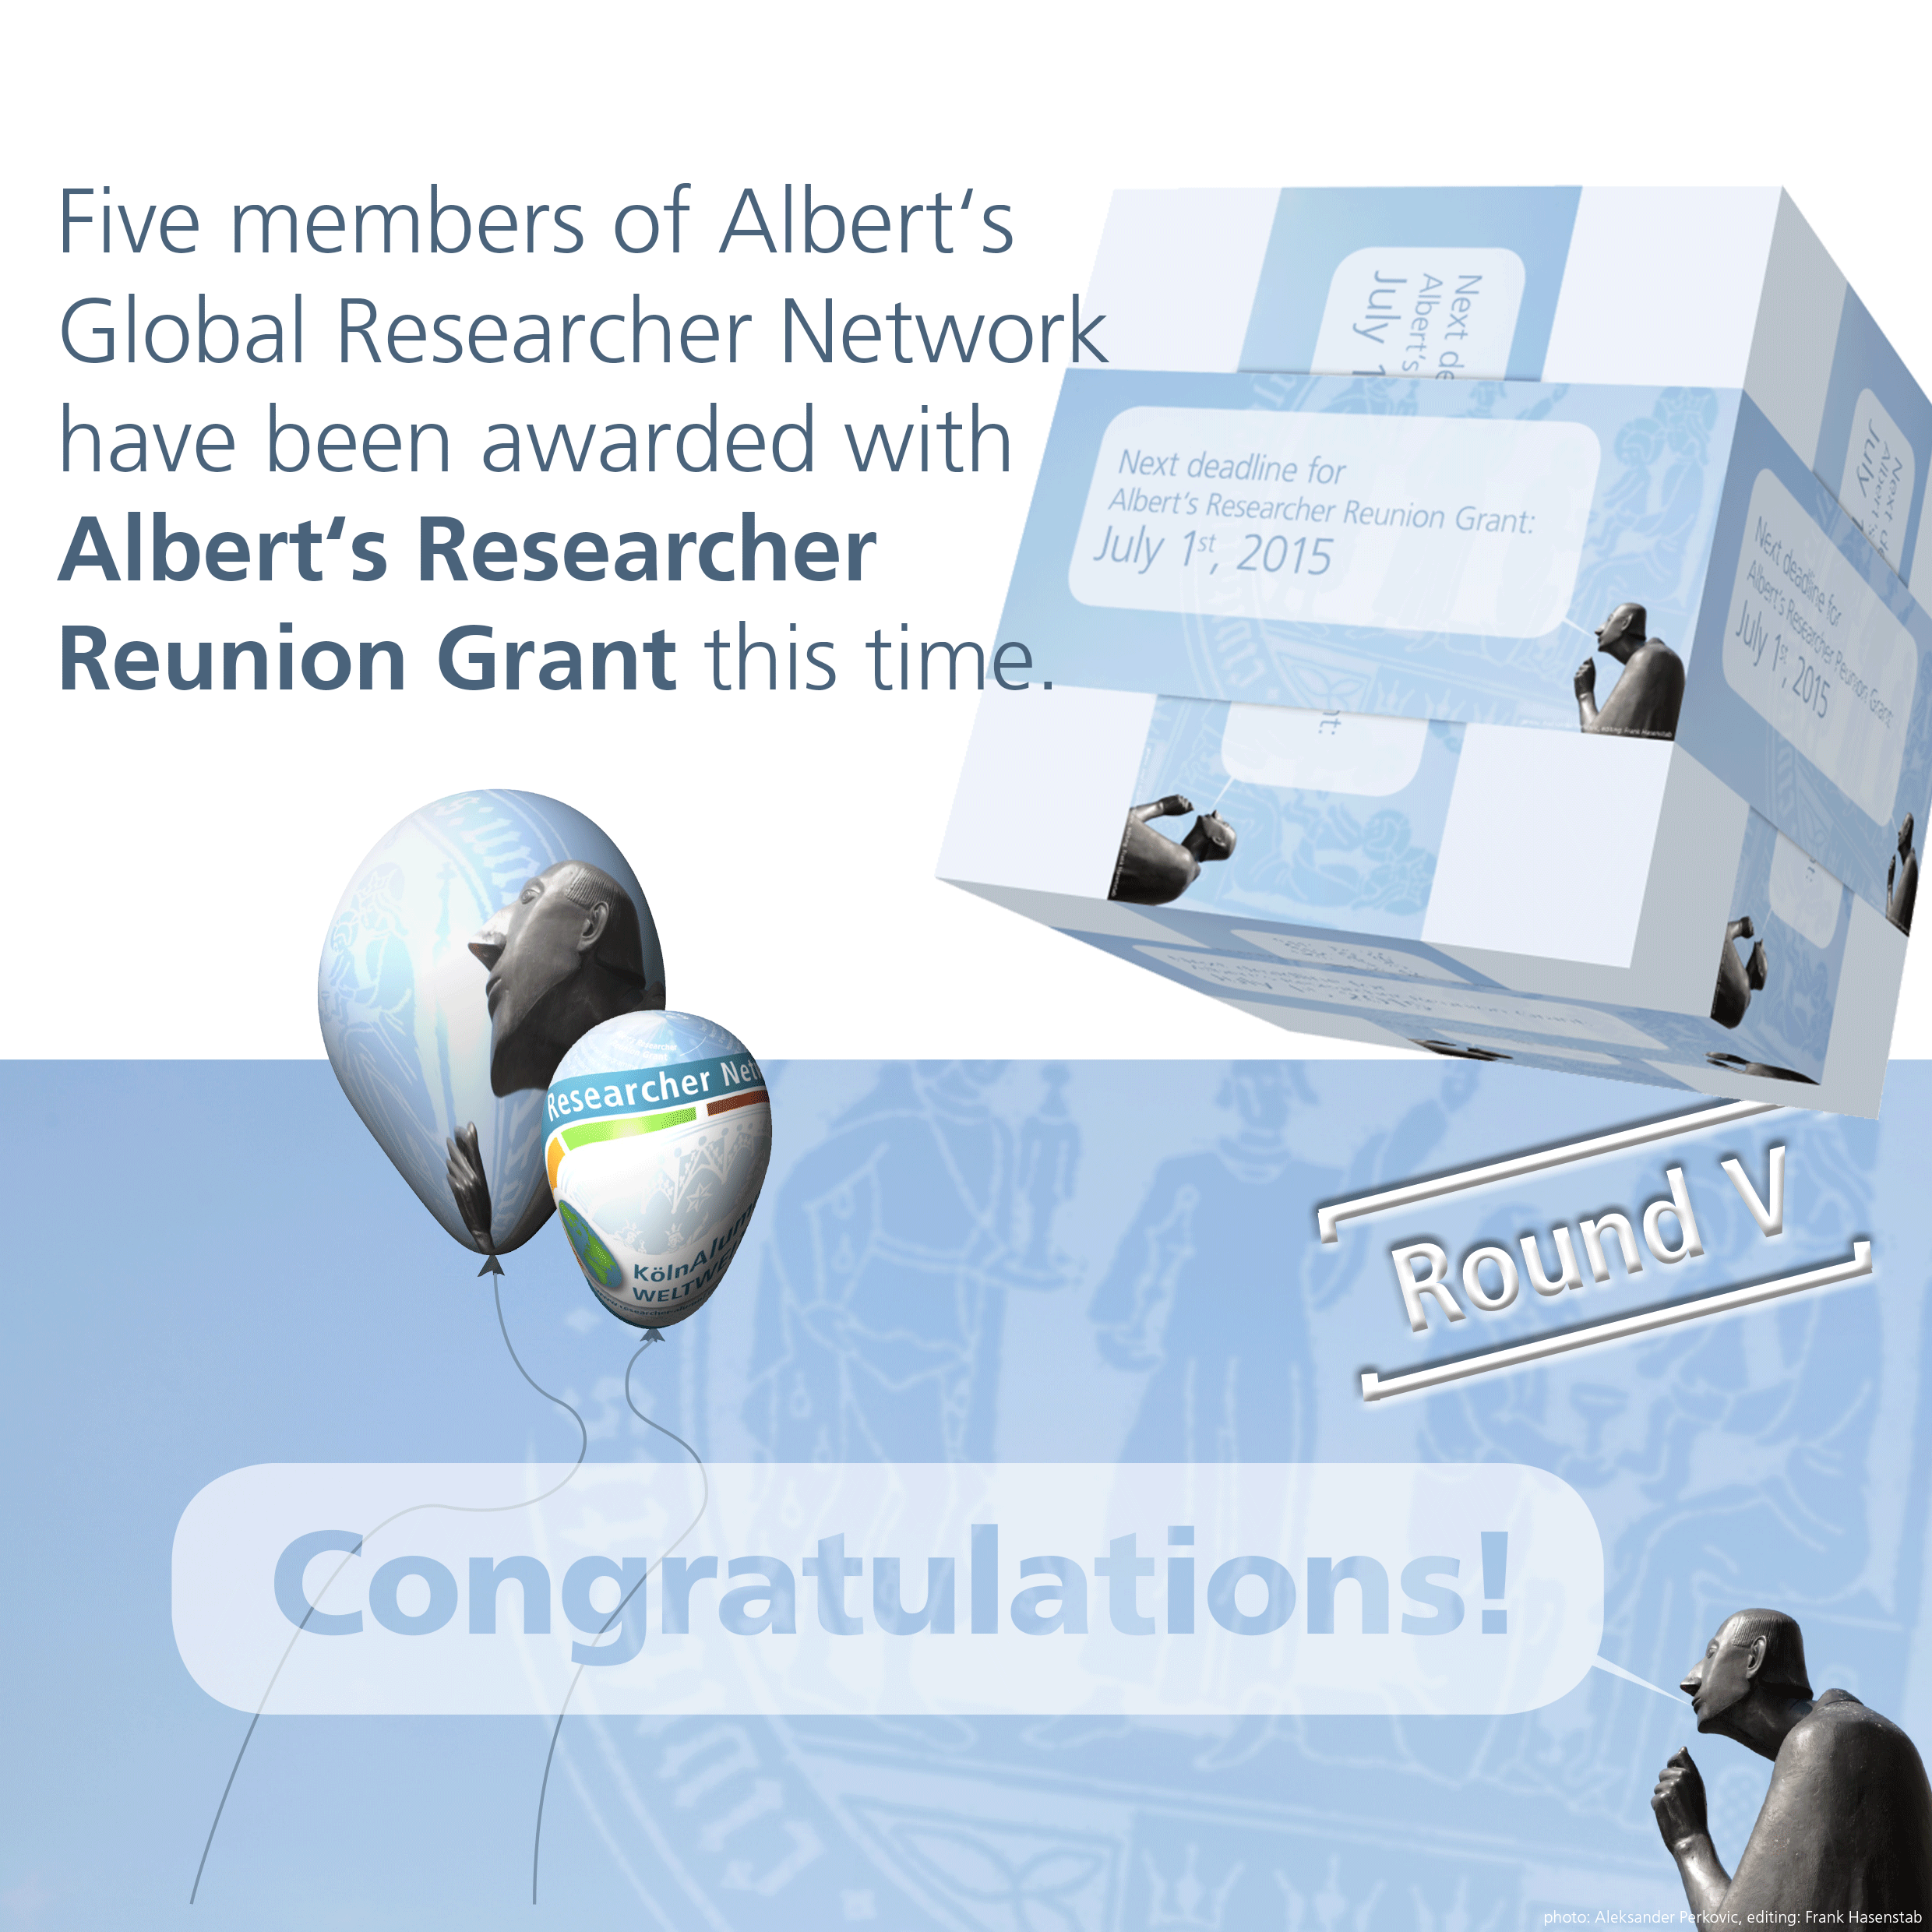 Congratulations: Five members of Albert's Global Researcher Network have been awarded with Albert's Researcher Reunion Grant this time.